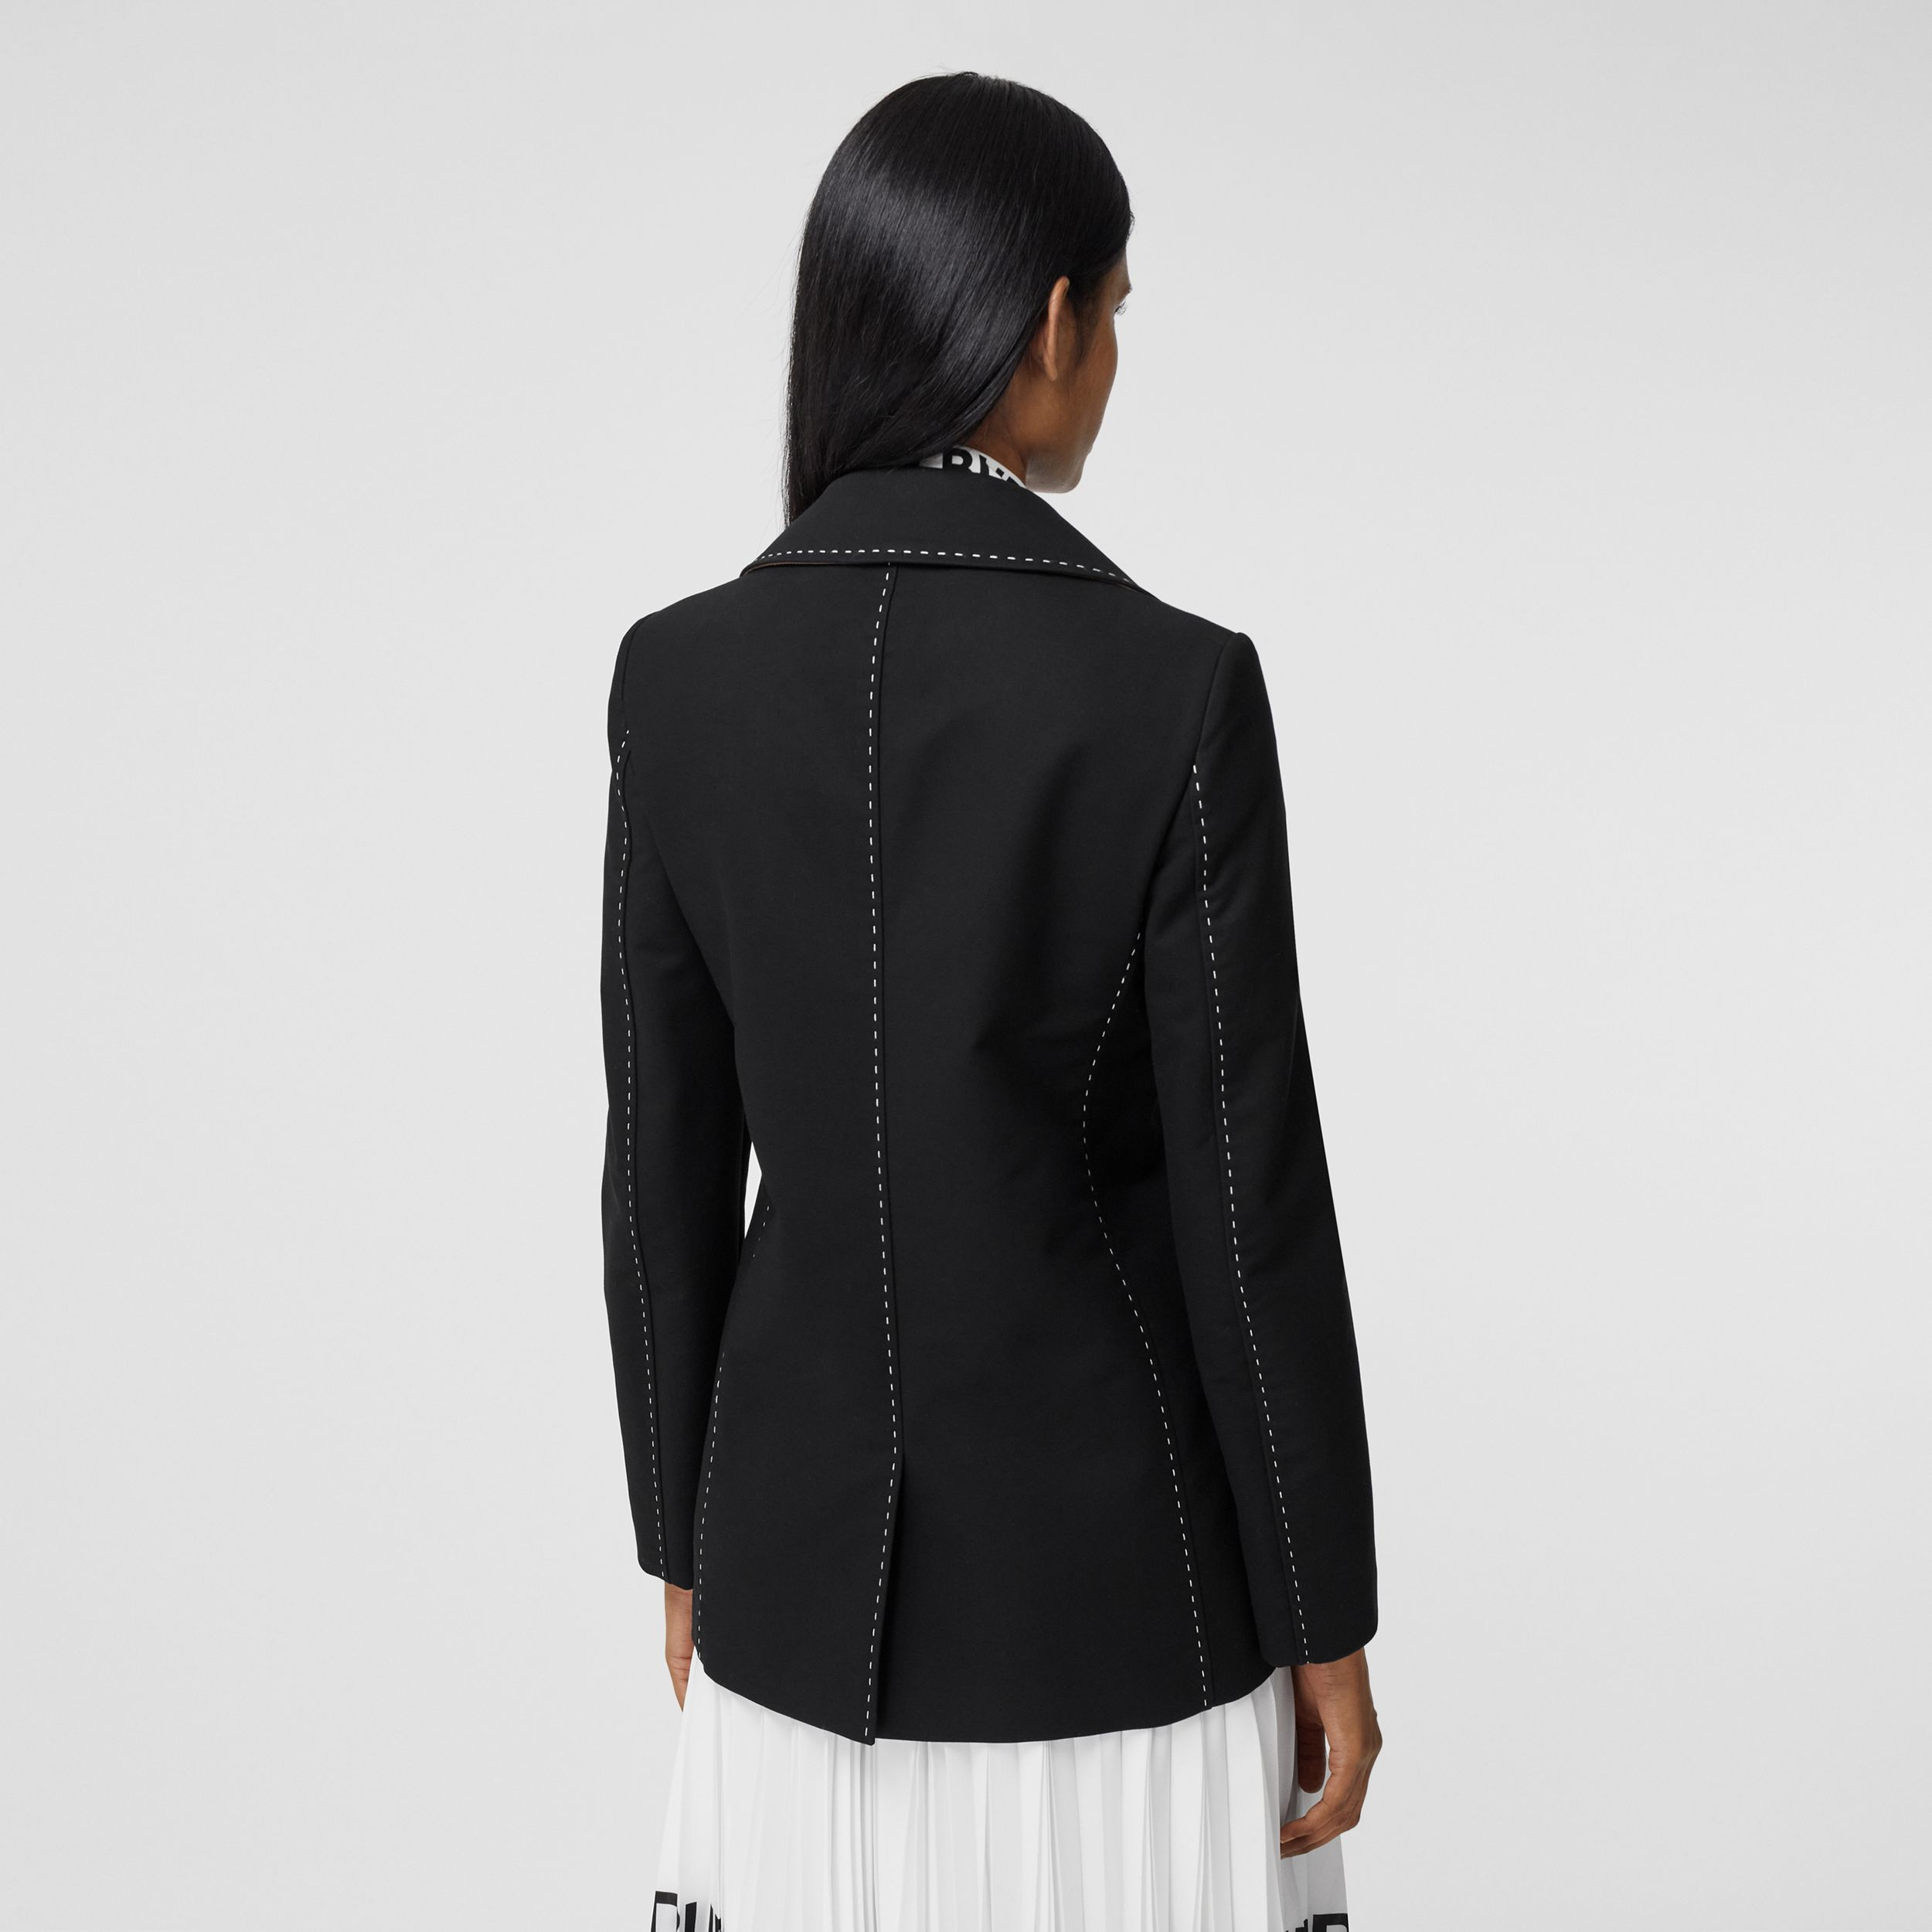 Topstitched Cotton Pea Coat in Black - Women | Burberry - 3